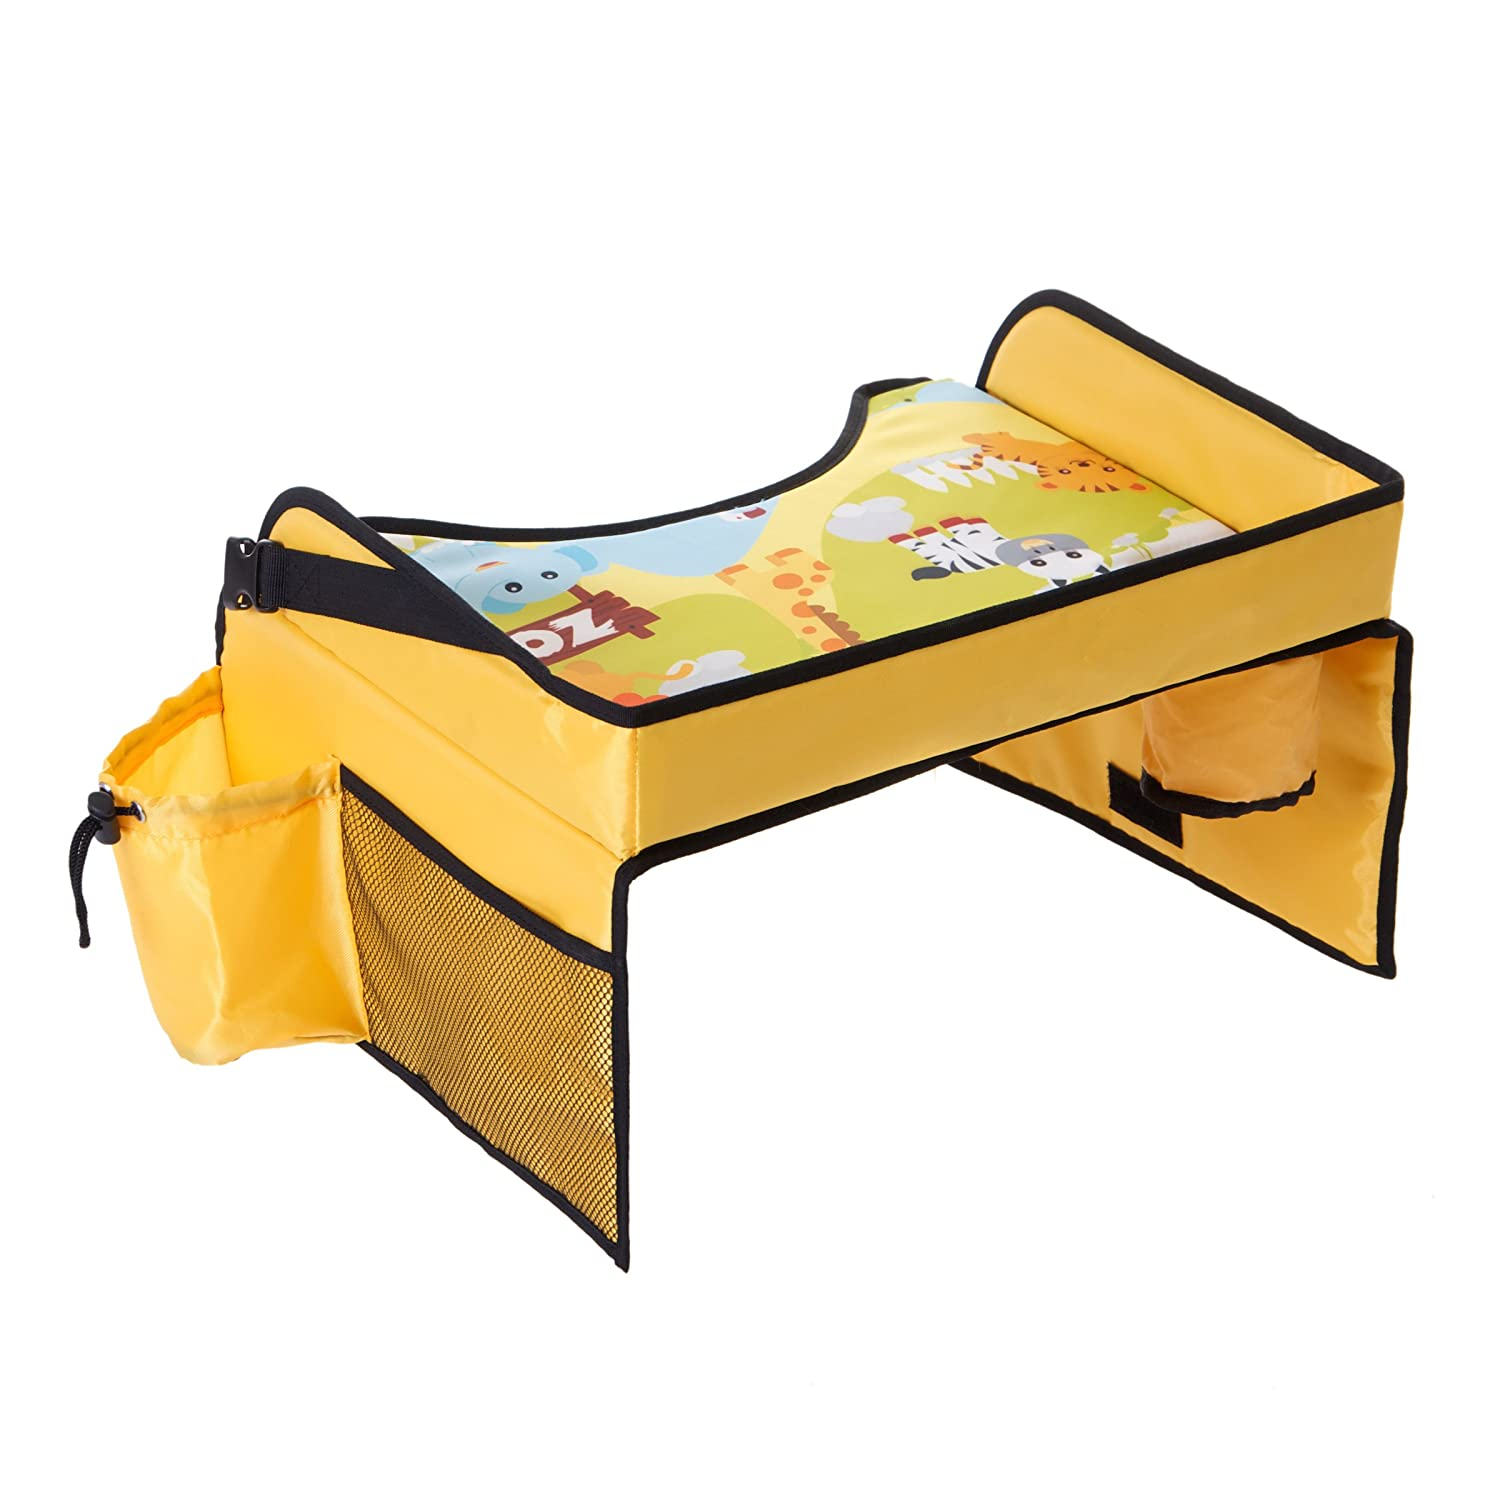 Kids Travel Tray Car Organiser Children Snack and Play Tray for Car Bus Train Plane Indoor Outdoors Journeys CL